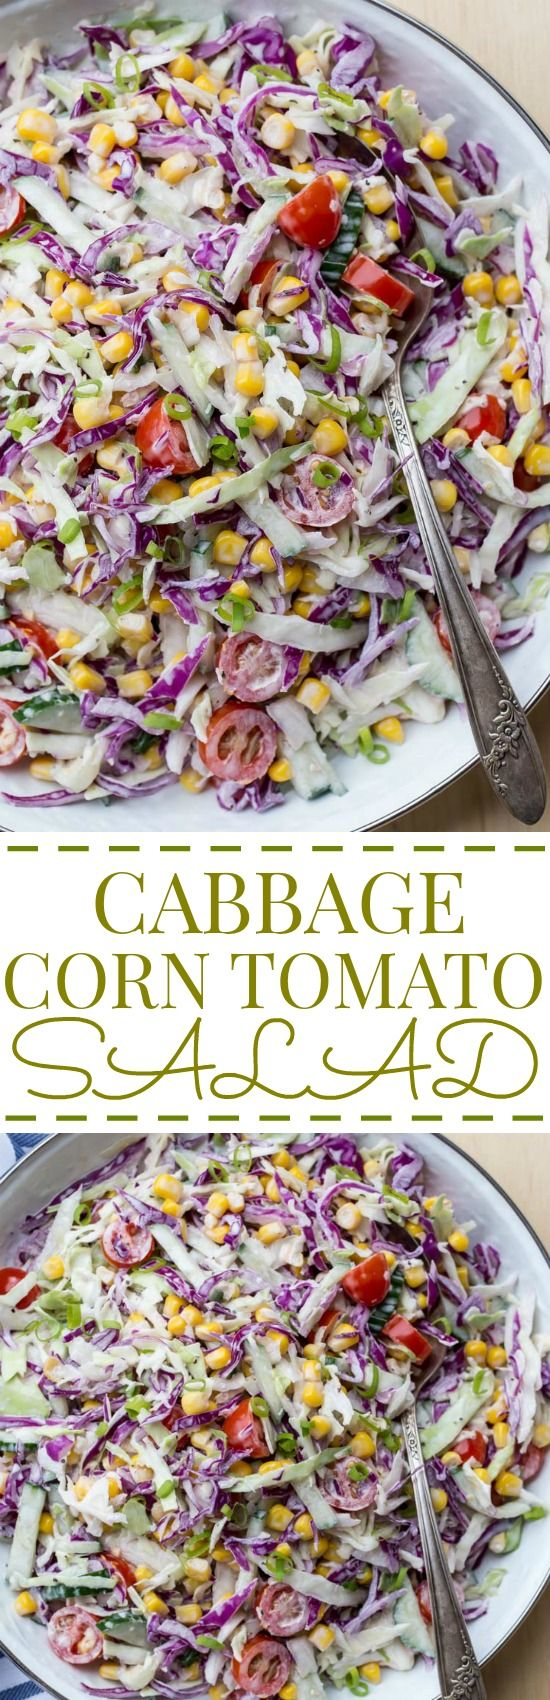 Cabbage Corn Cucumber and Tomato Salad                                                                                                                                                                                 More